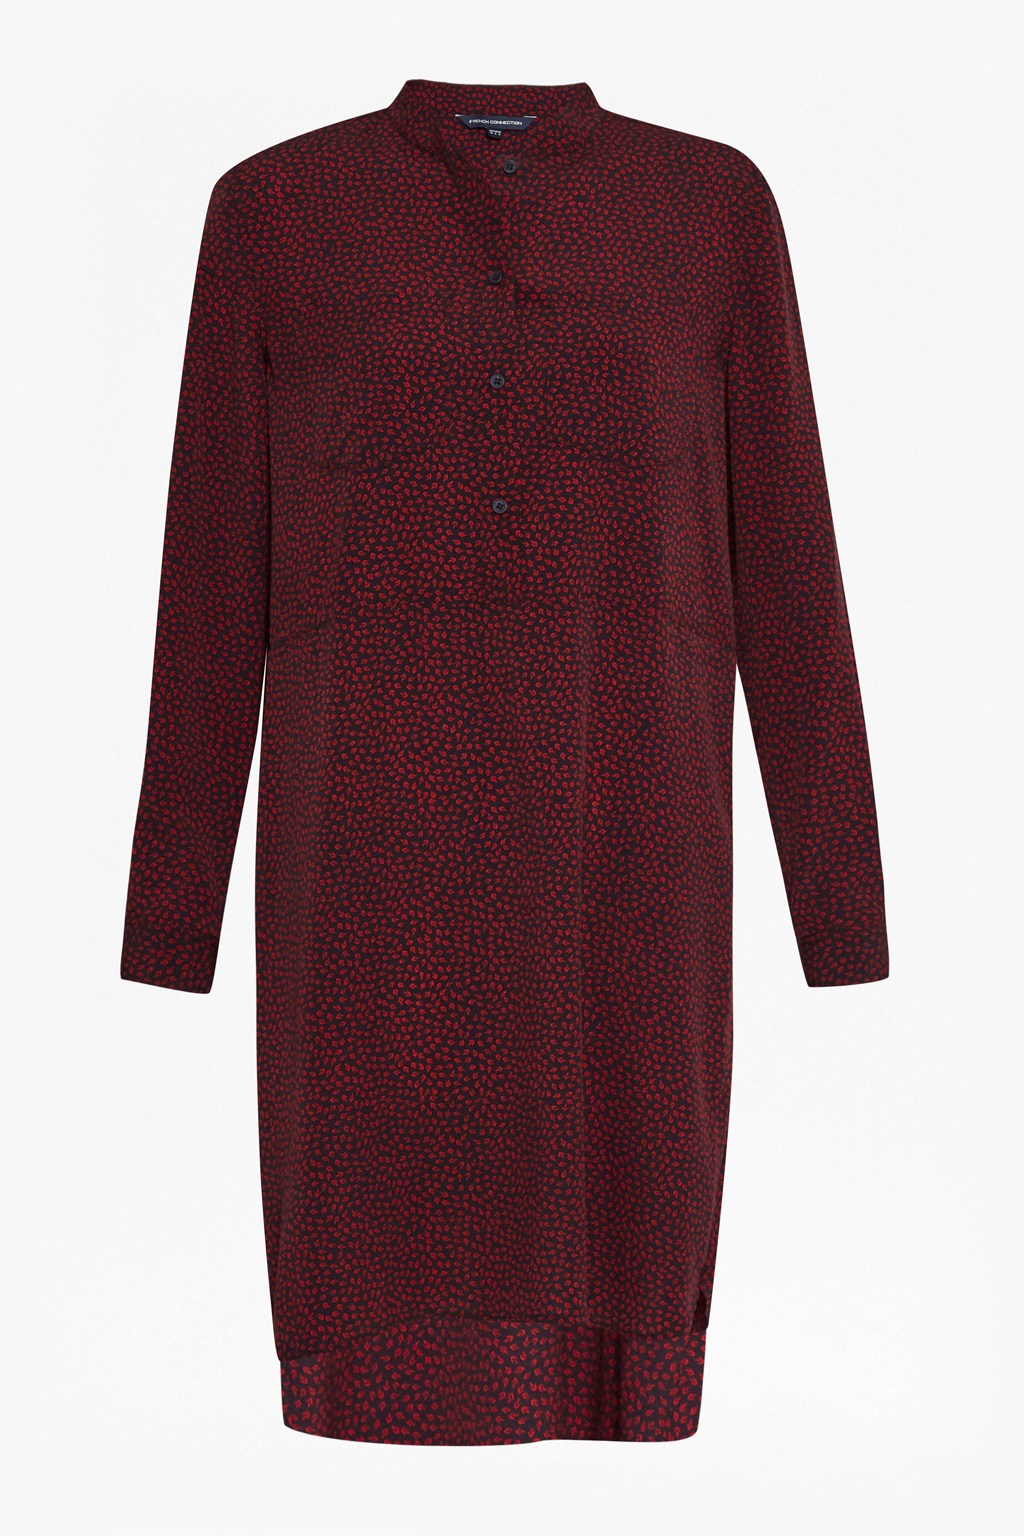 Callie lightweight crepe shirt dress dresses french for French connection shirt dress